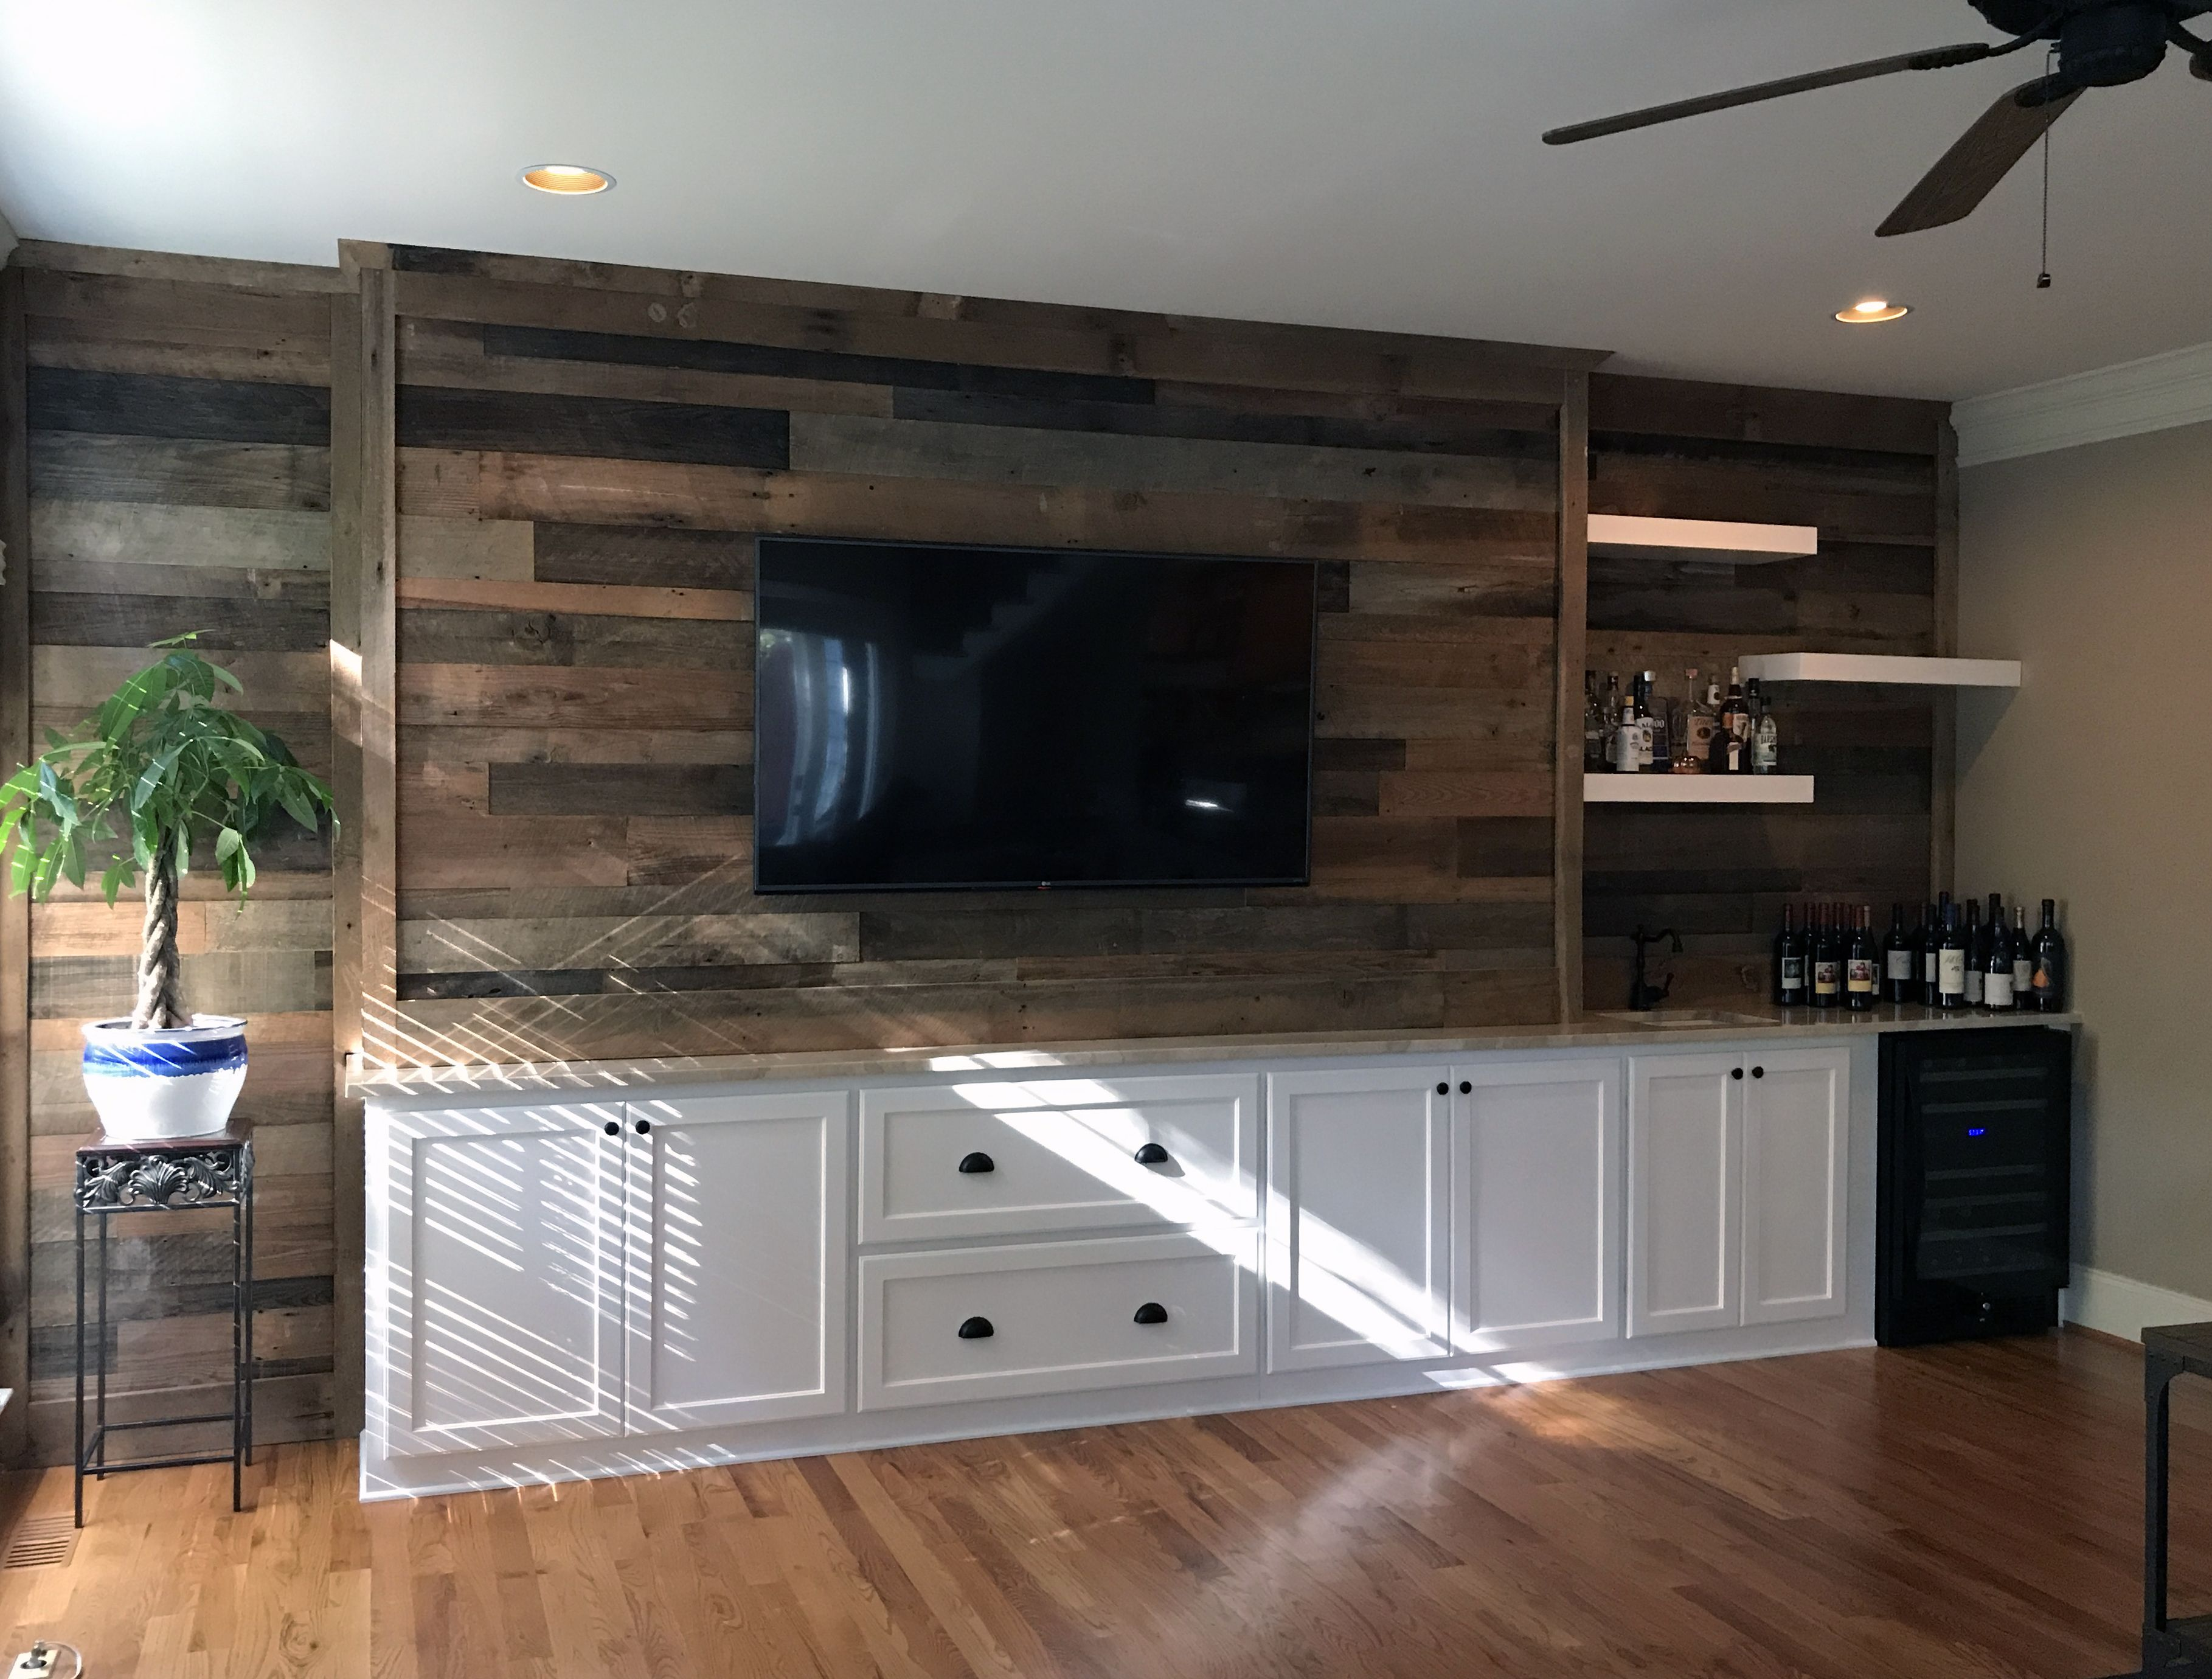 Custom Lower Shaker Style Cabinets And Drawers With A Reclaimed